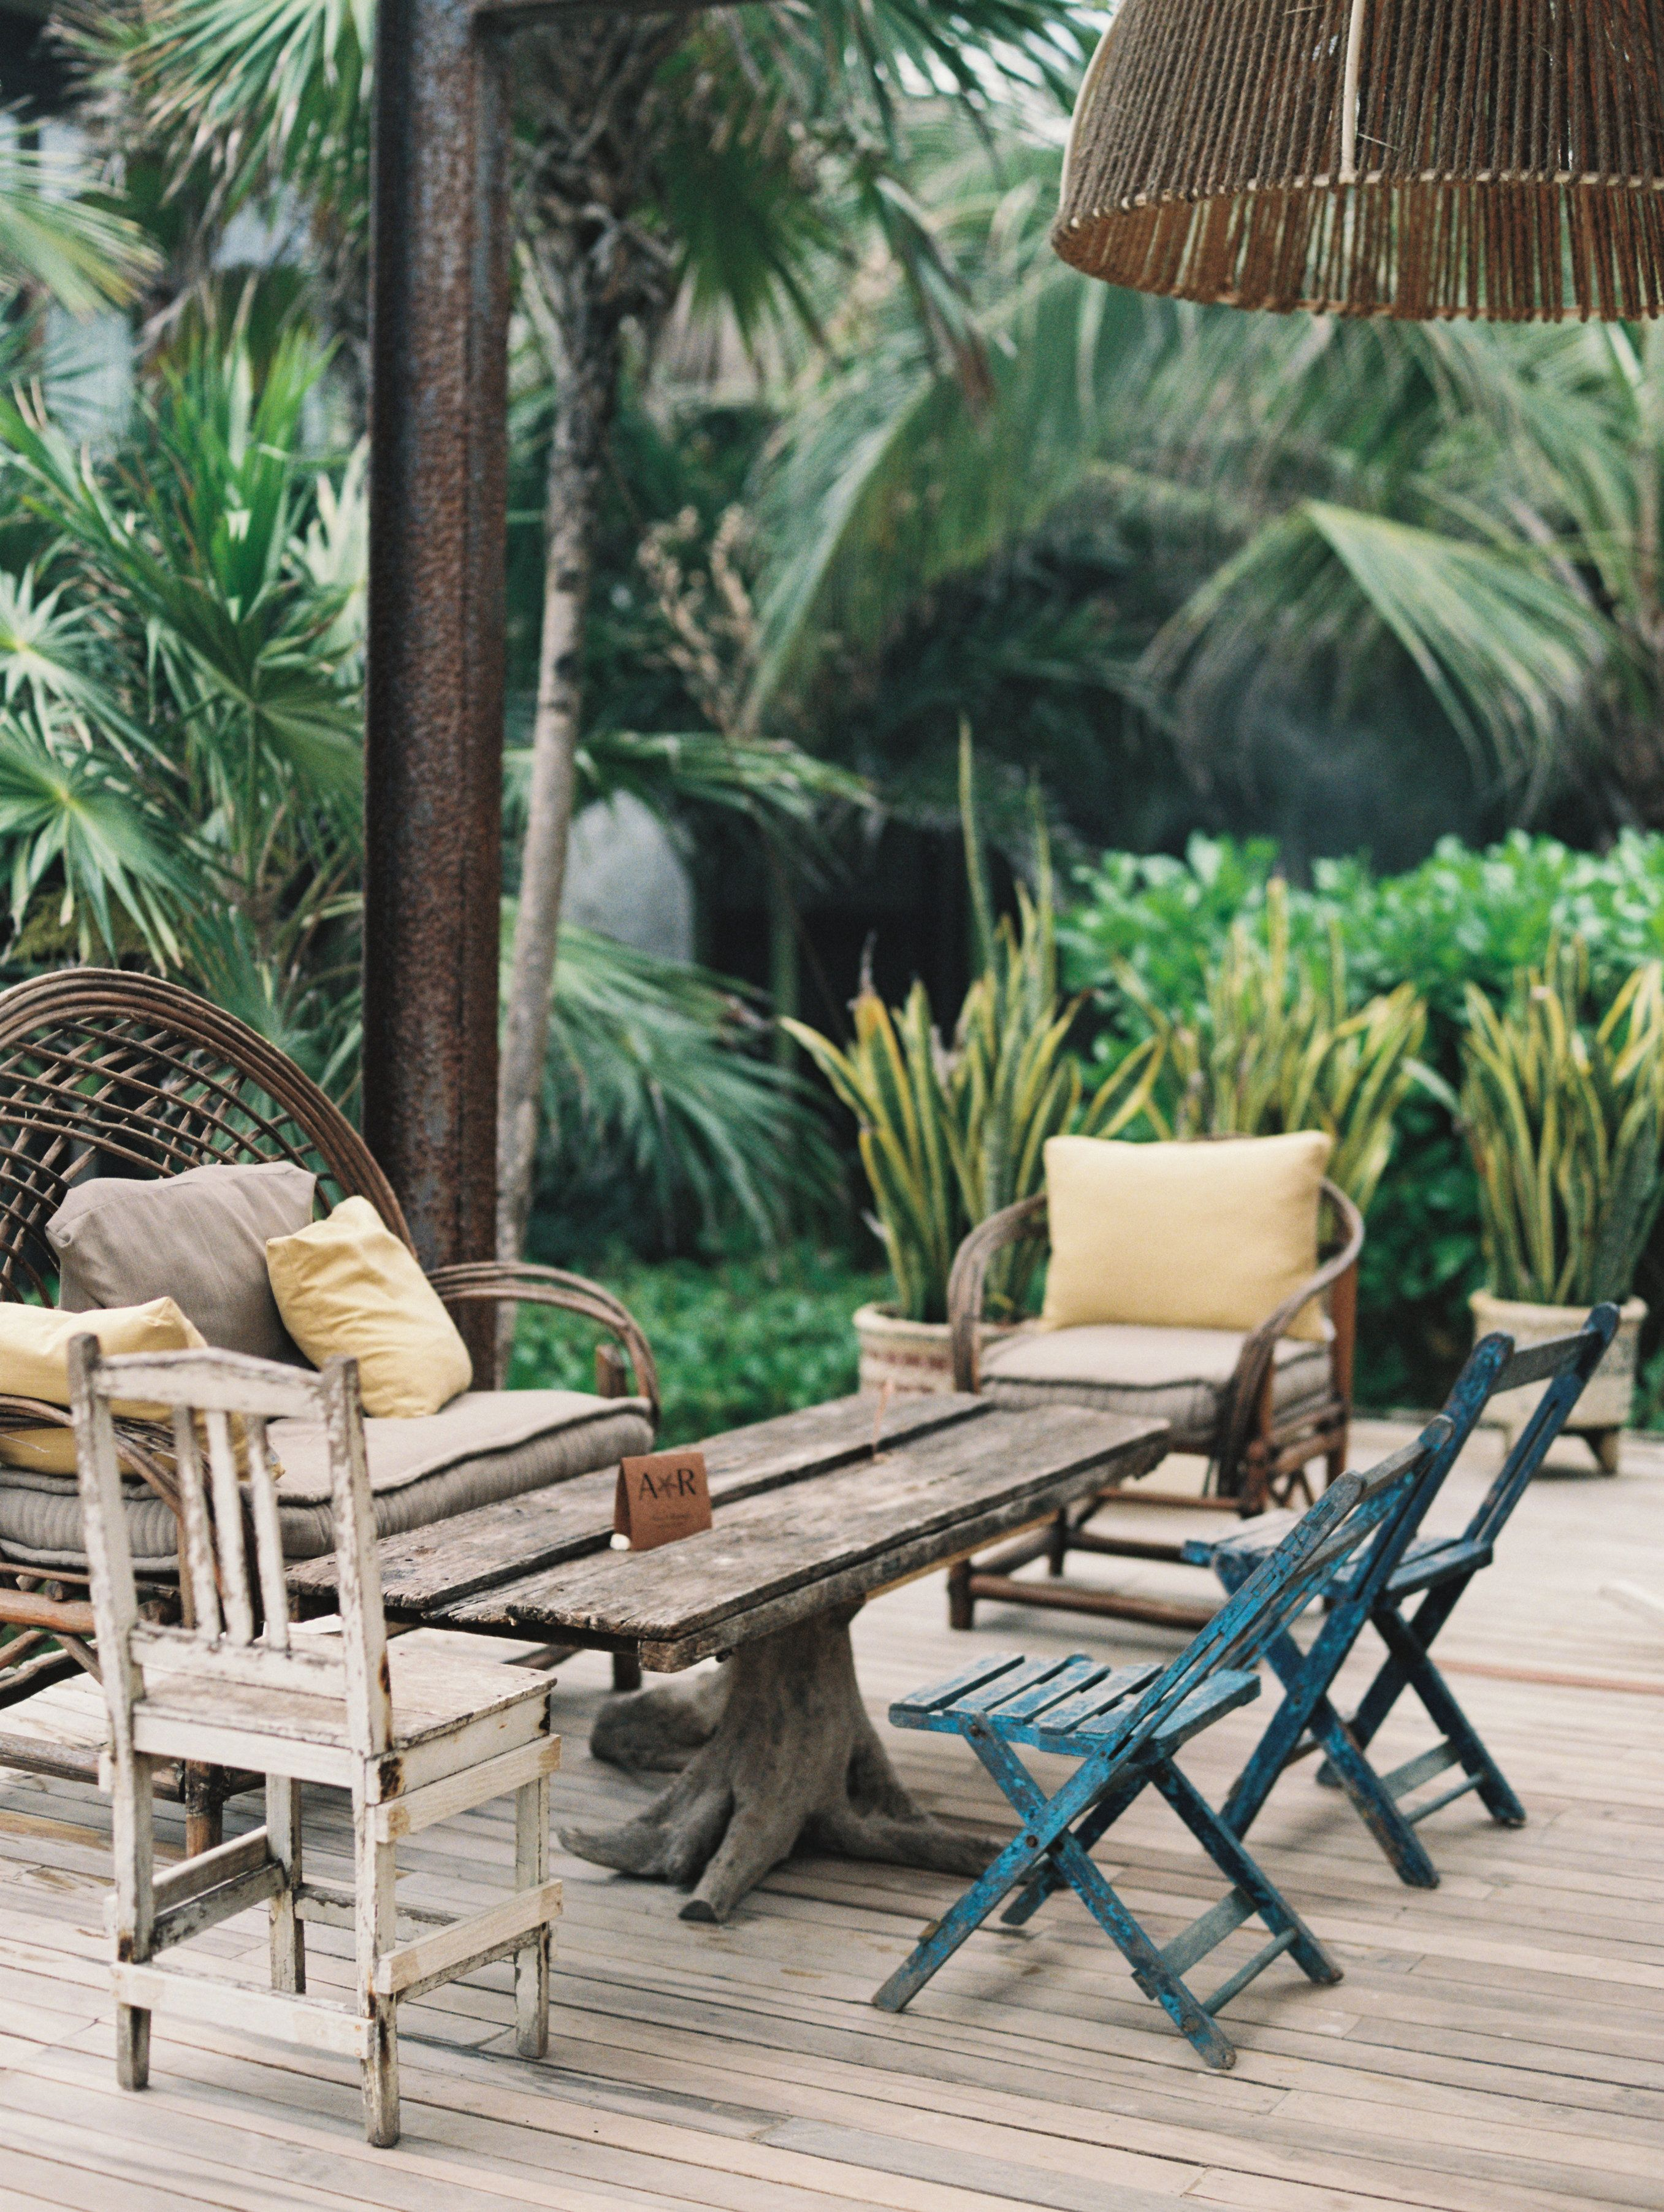 Eclectic style at the beach